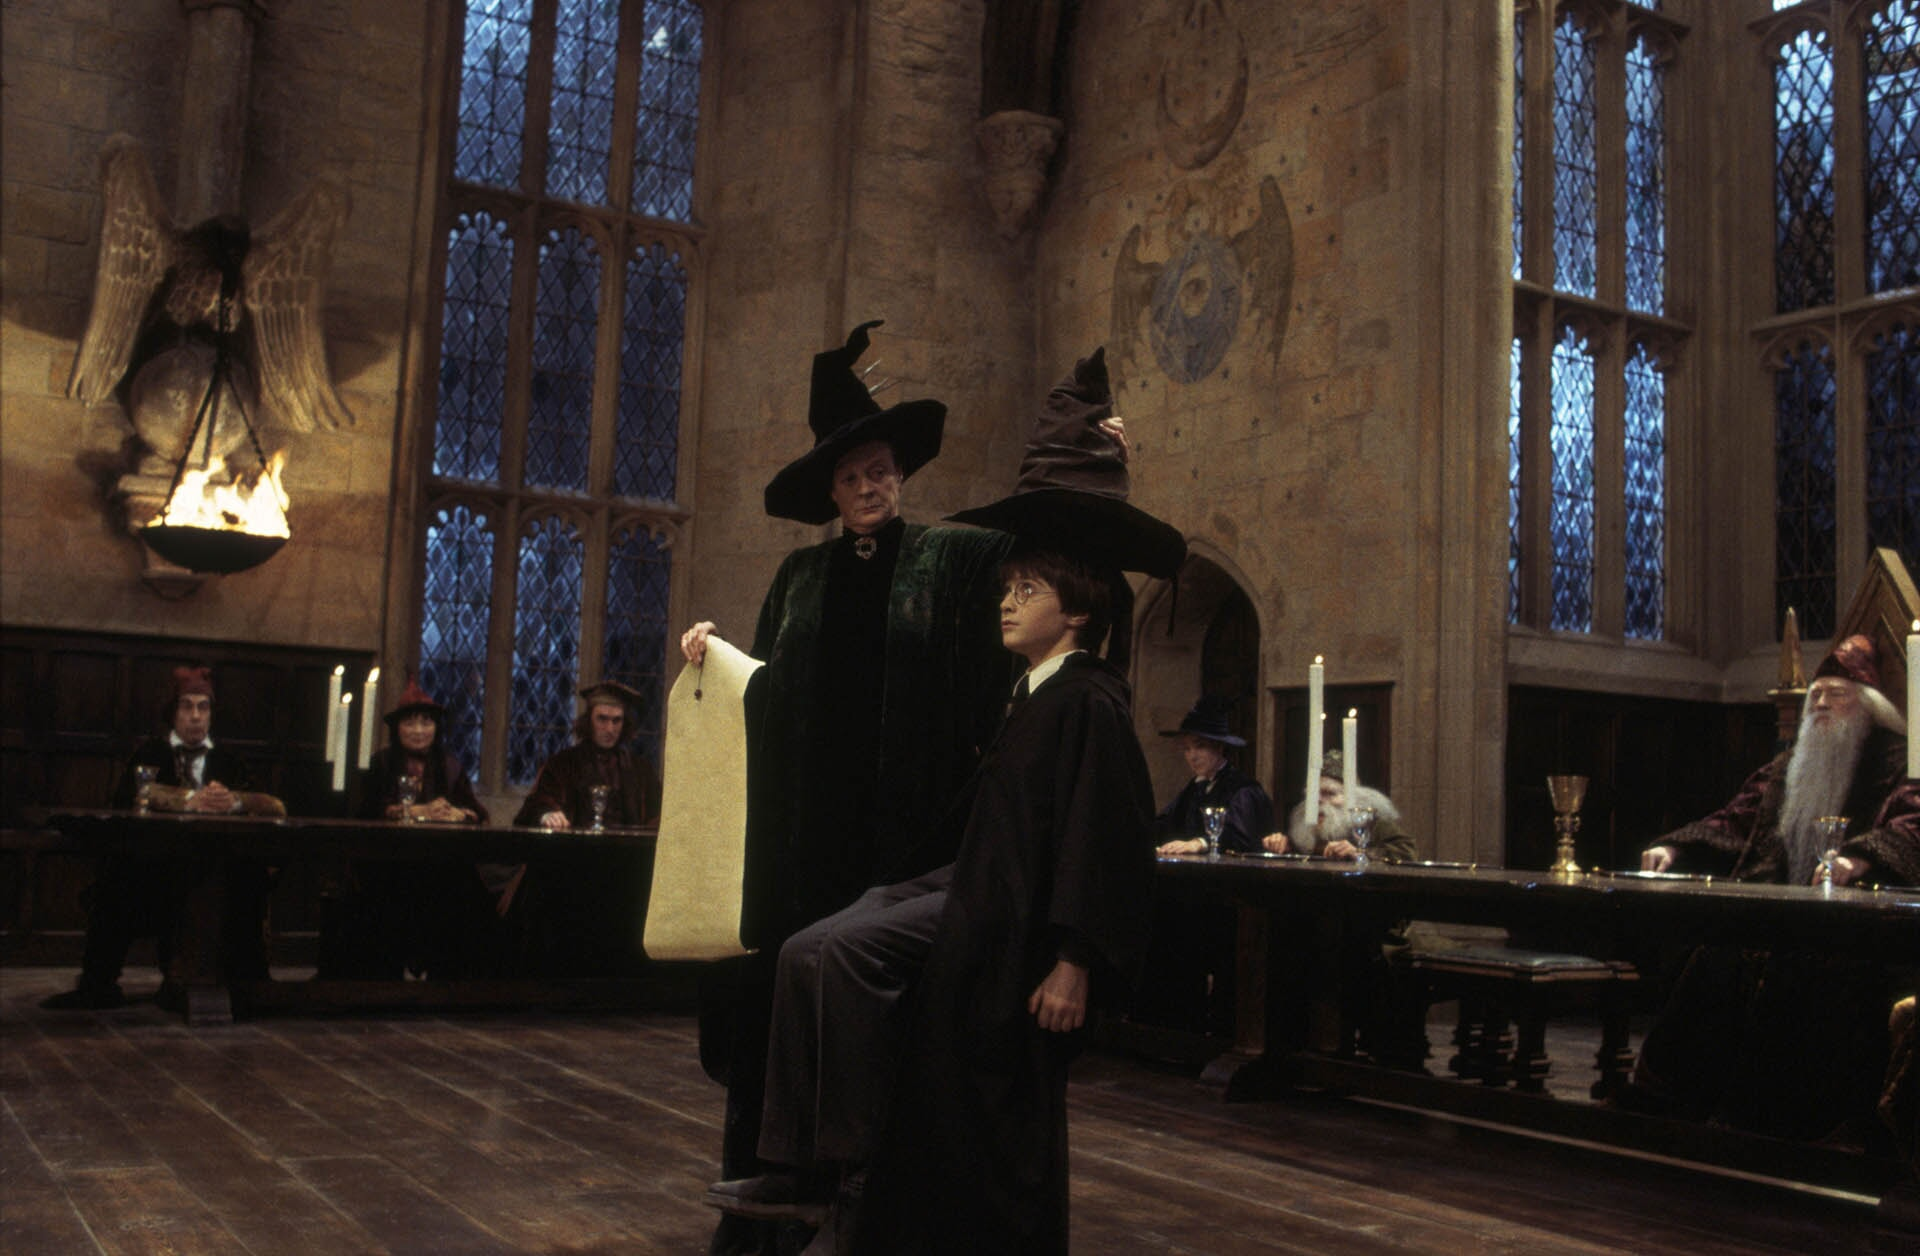 Harry Potter and the Philosopher's Stone - Image 2